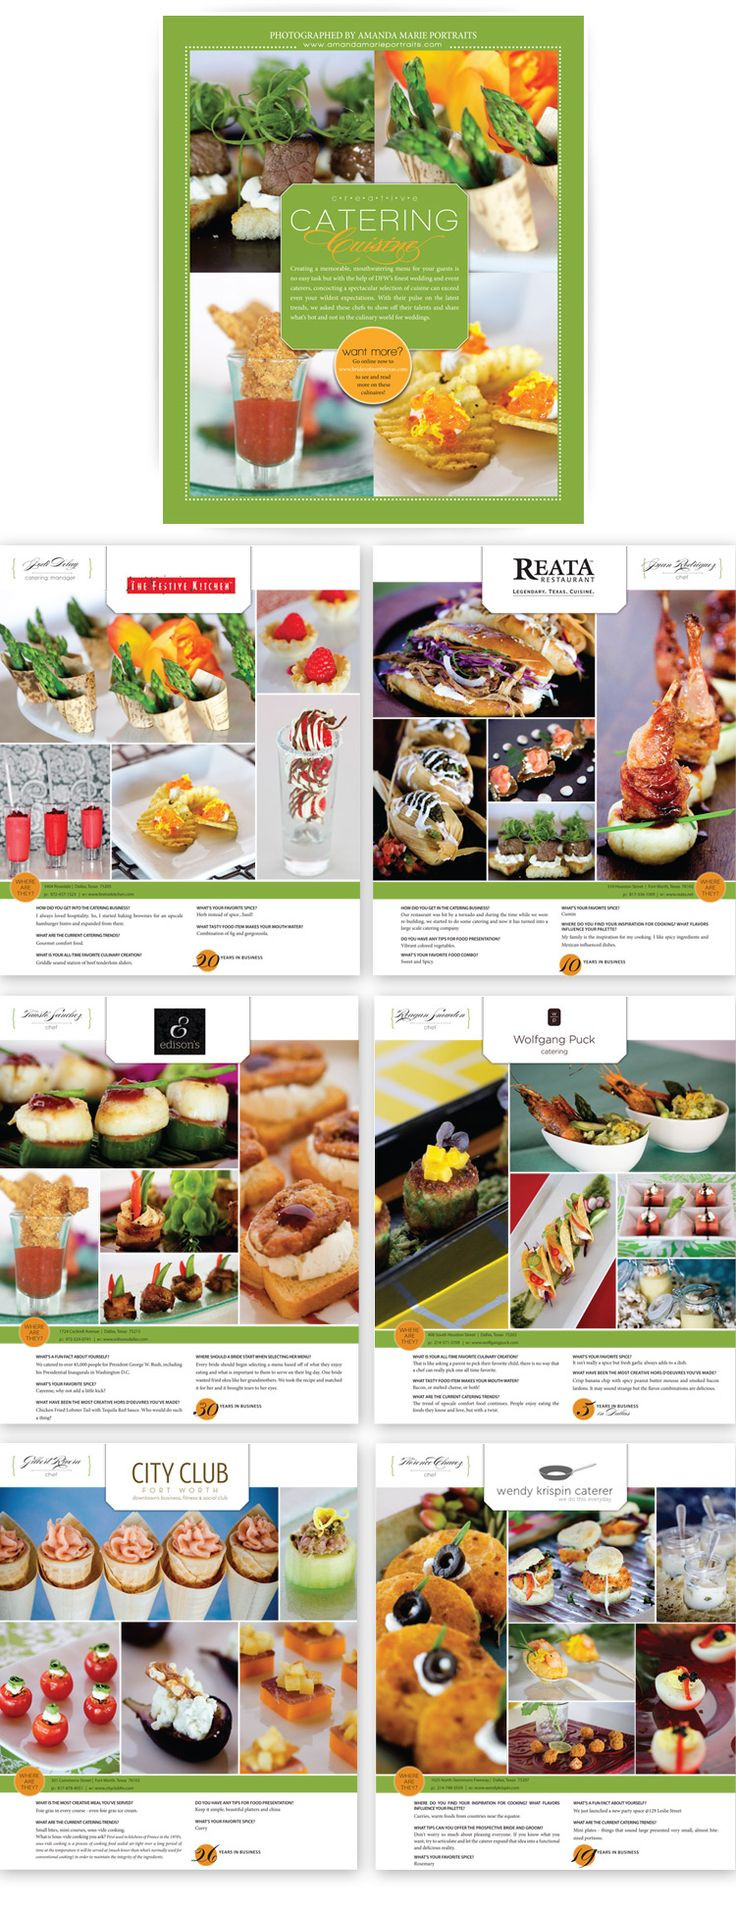 DFW Catering options